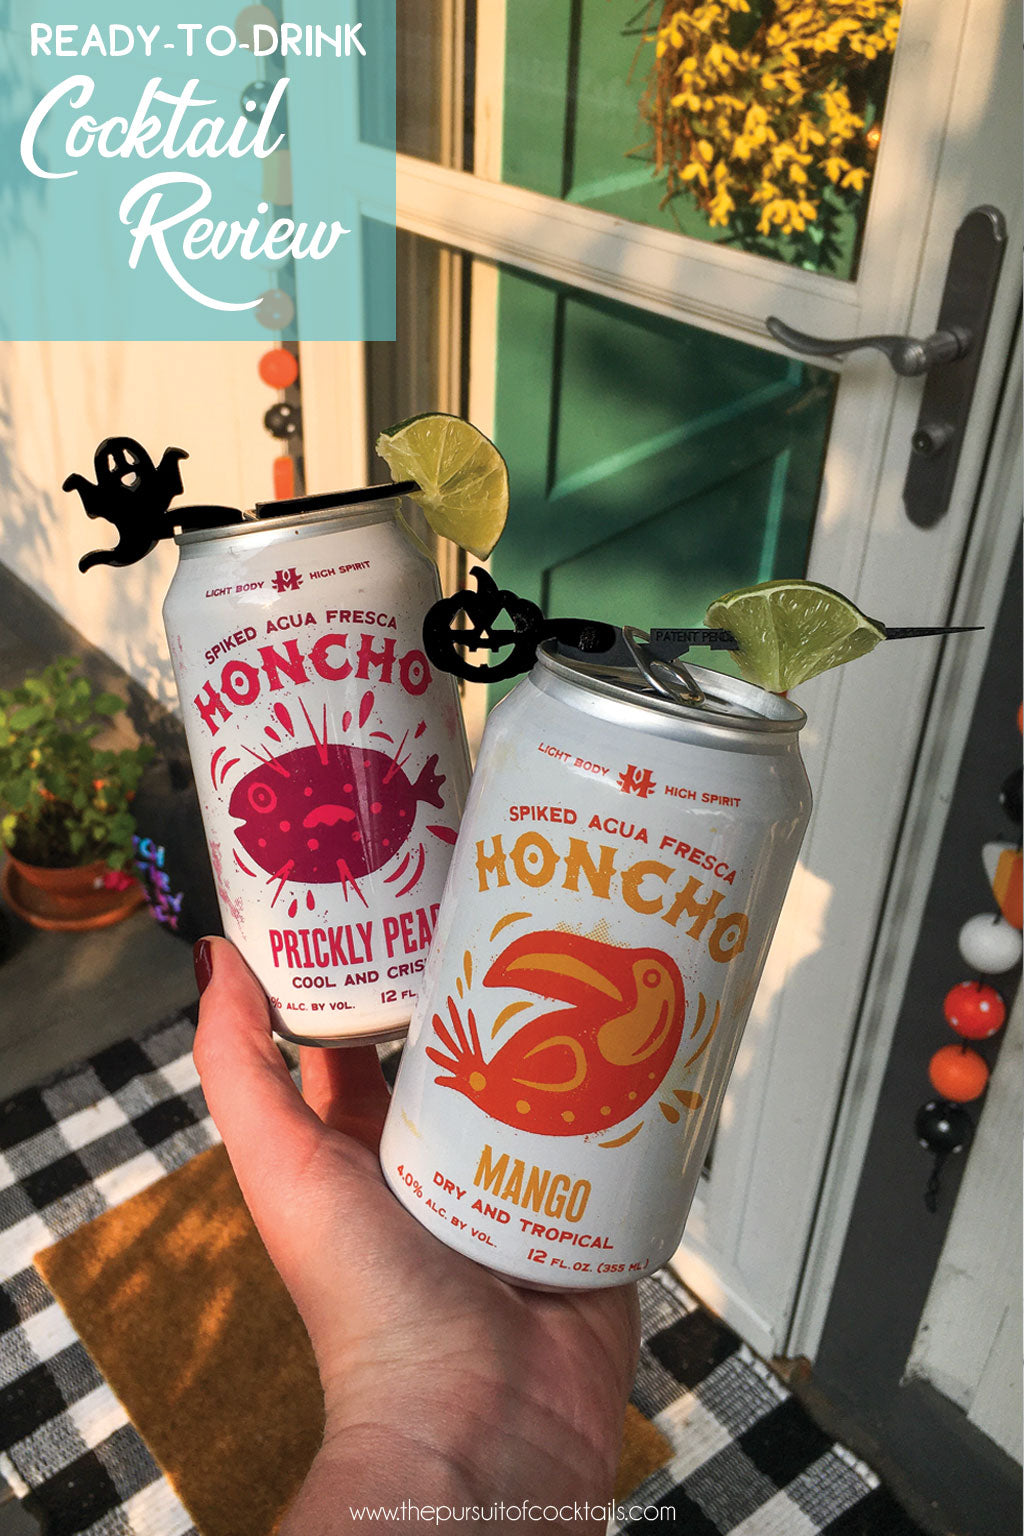 Honcho Spiked Agua Fresca canned cocktail review by The Pursuit of Cocktails